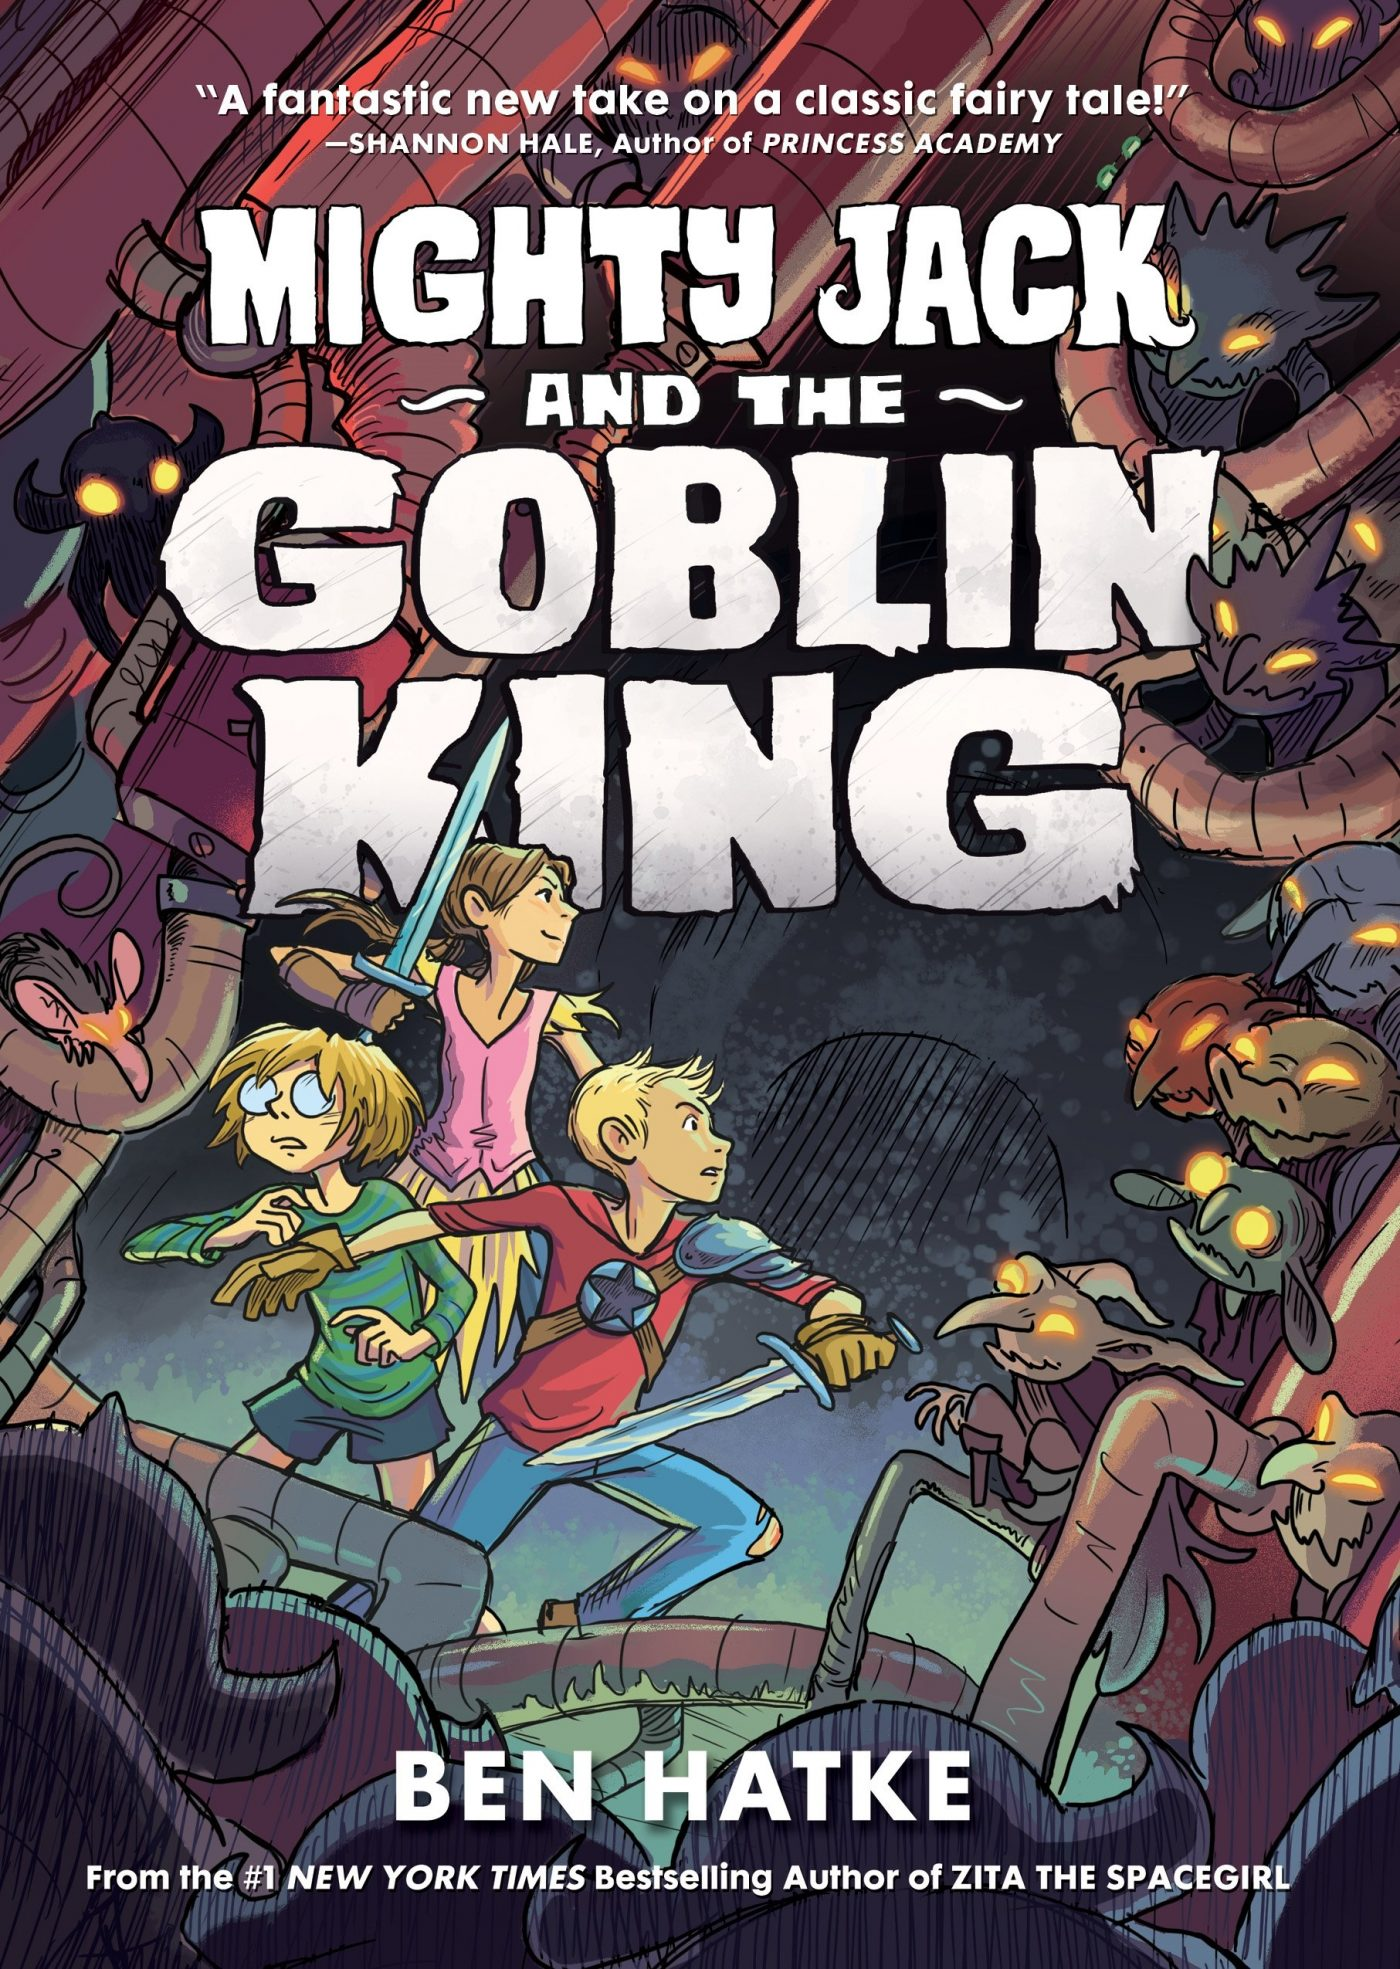 'Mighty Jack and the Goblin King' review: Jack and the Beanstalk meets Henson's Labyrinth